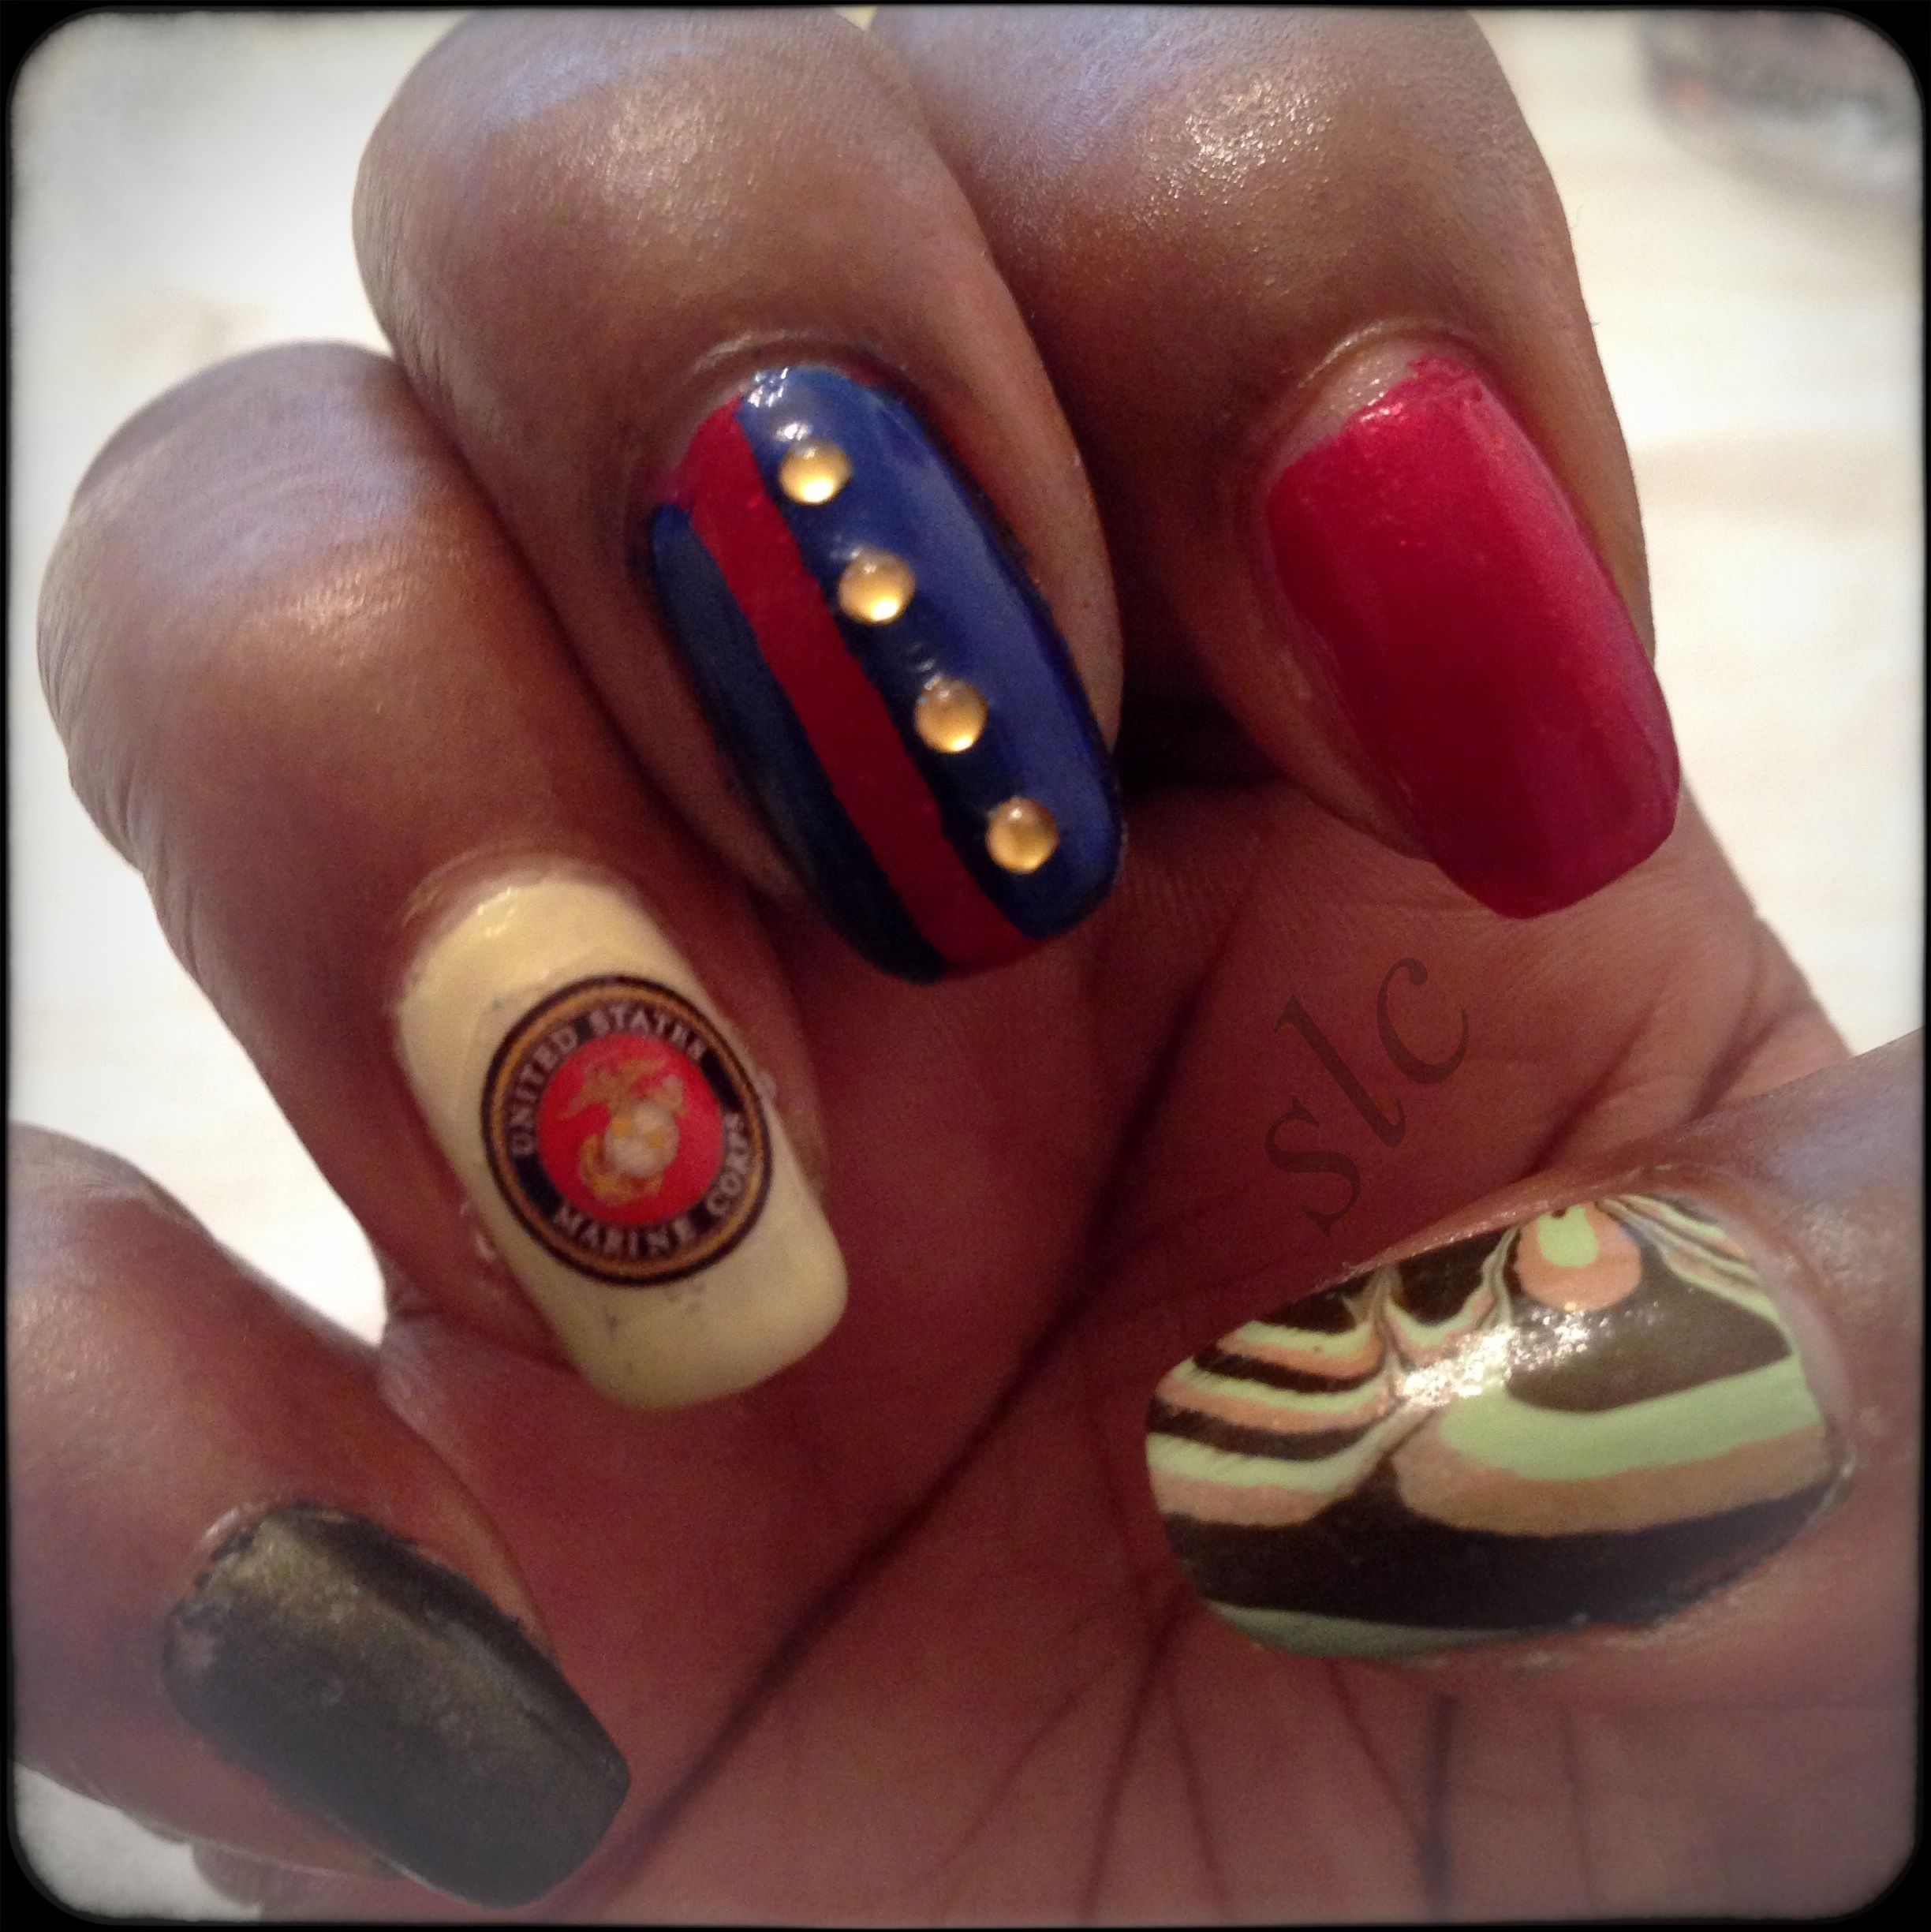 Marine corps brat nails wishing all marines a happy 238th marine corps brat nails wishing all marines a happy 238th birthday prinsesfo Gallery